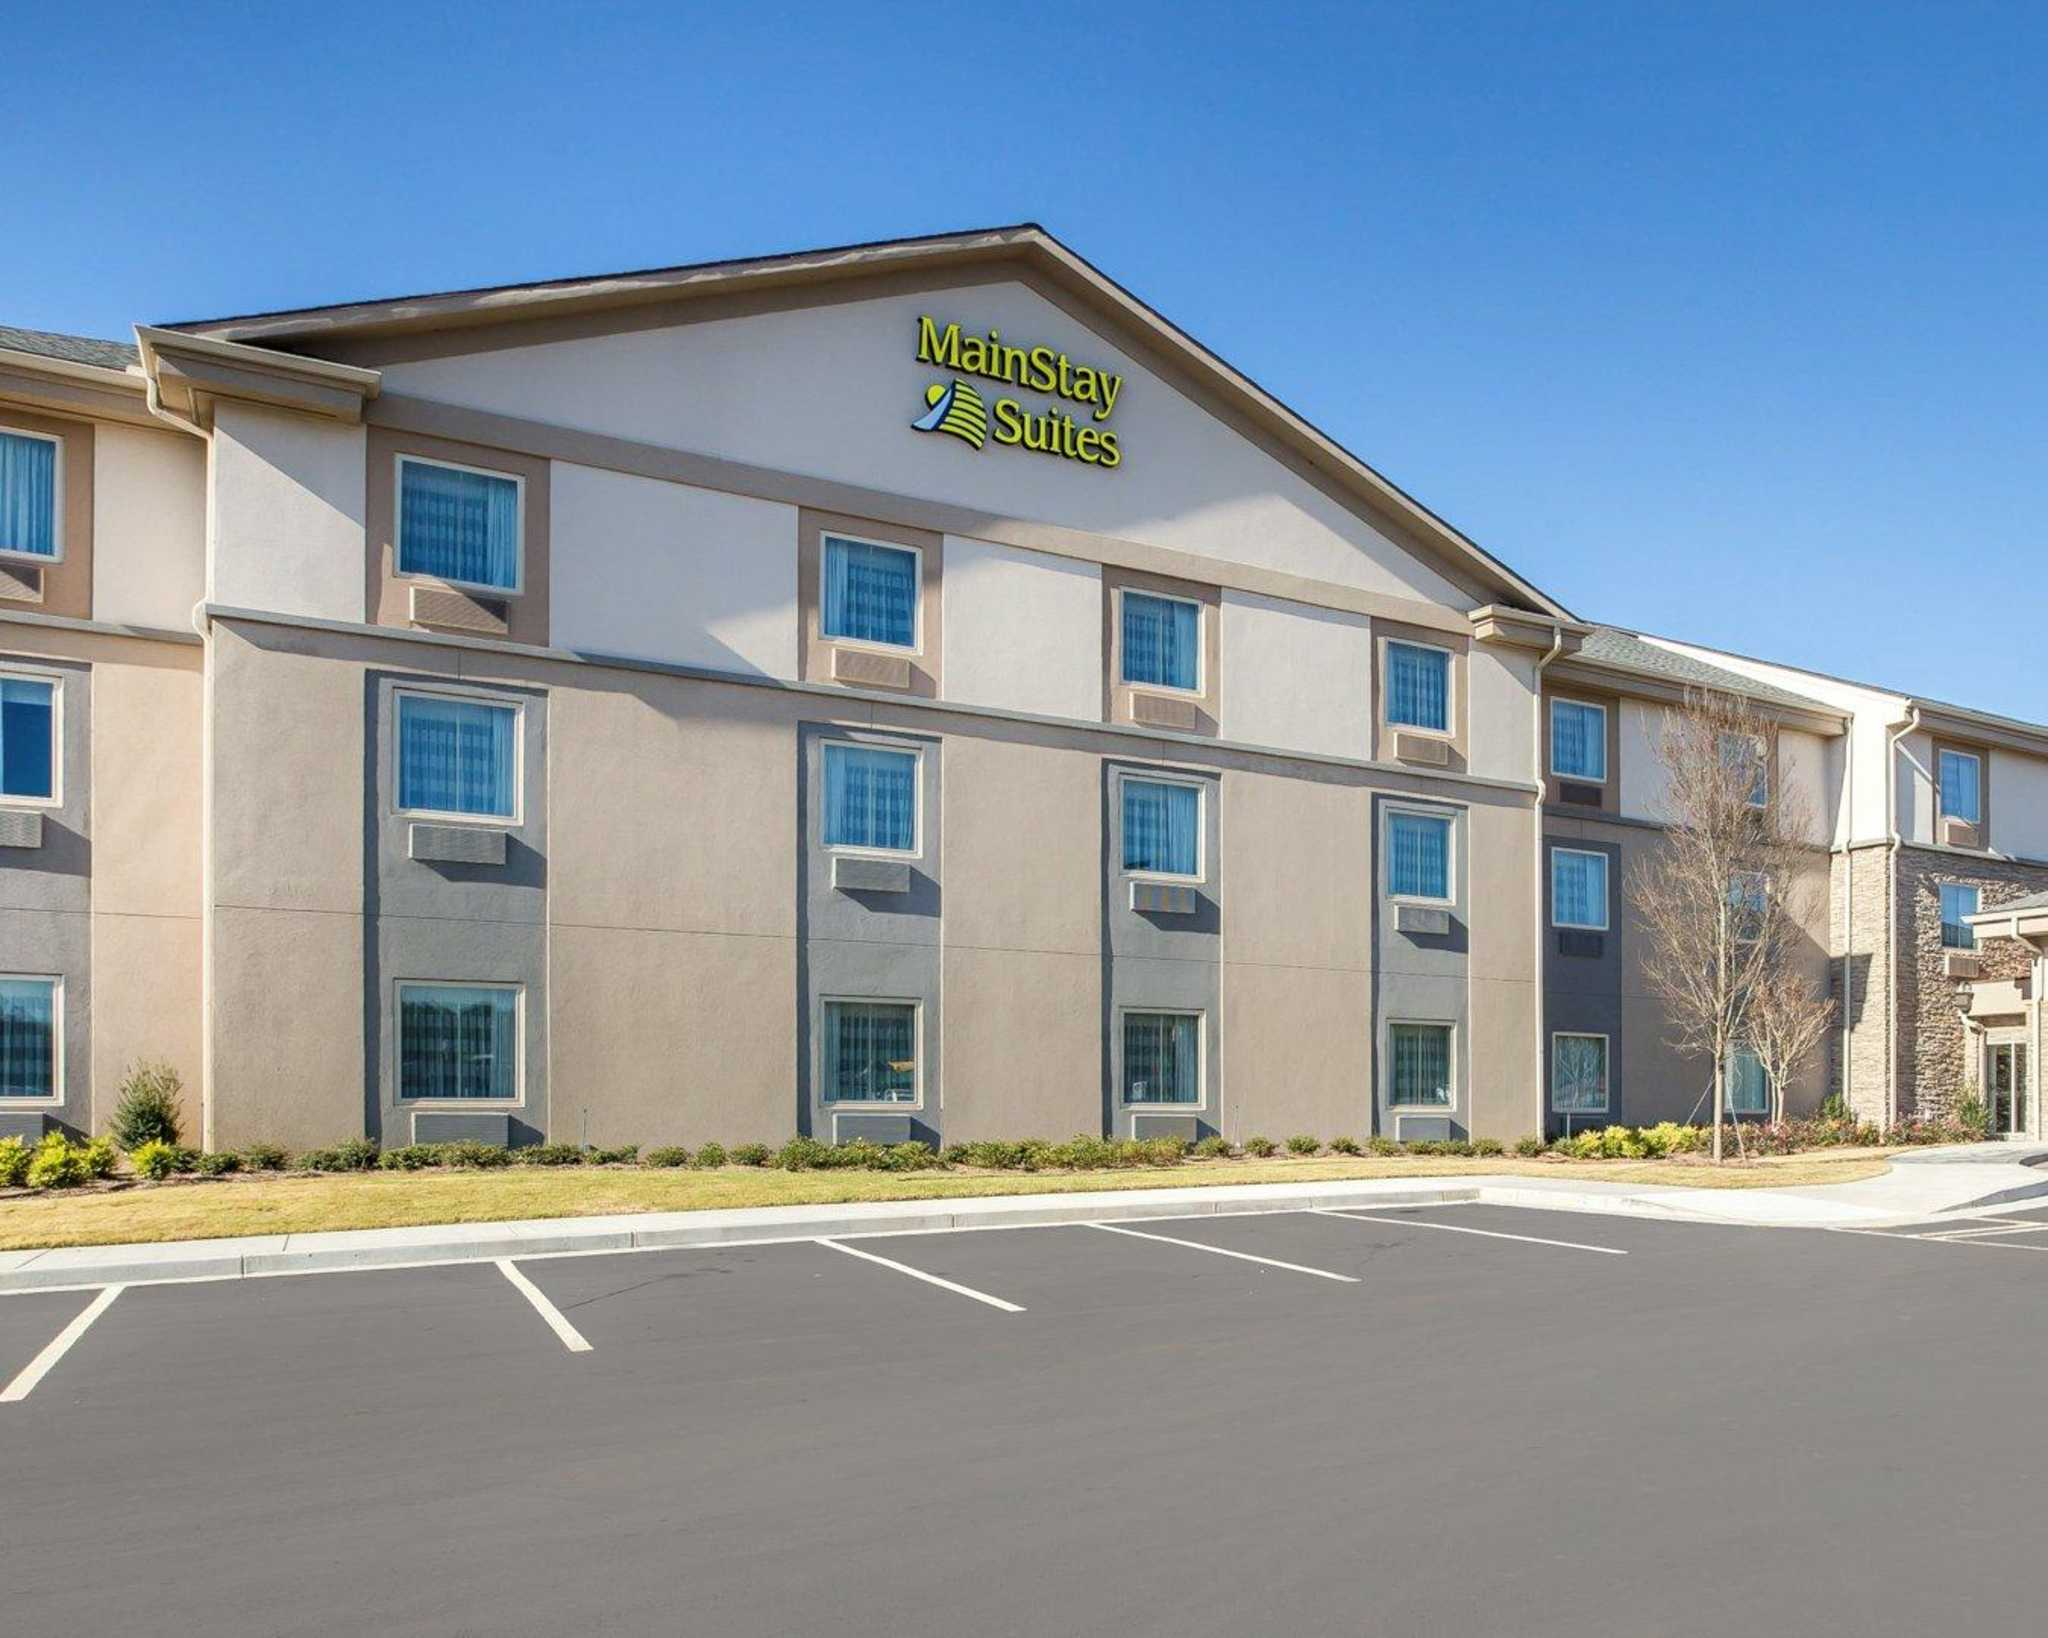 MainStay Suites Cartersville - Emerson Lake Point image 1